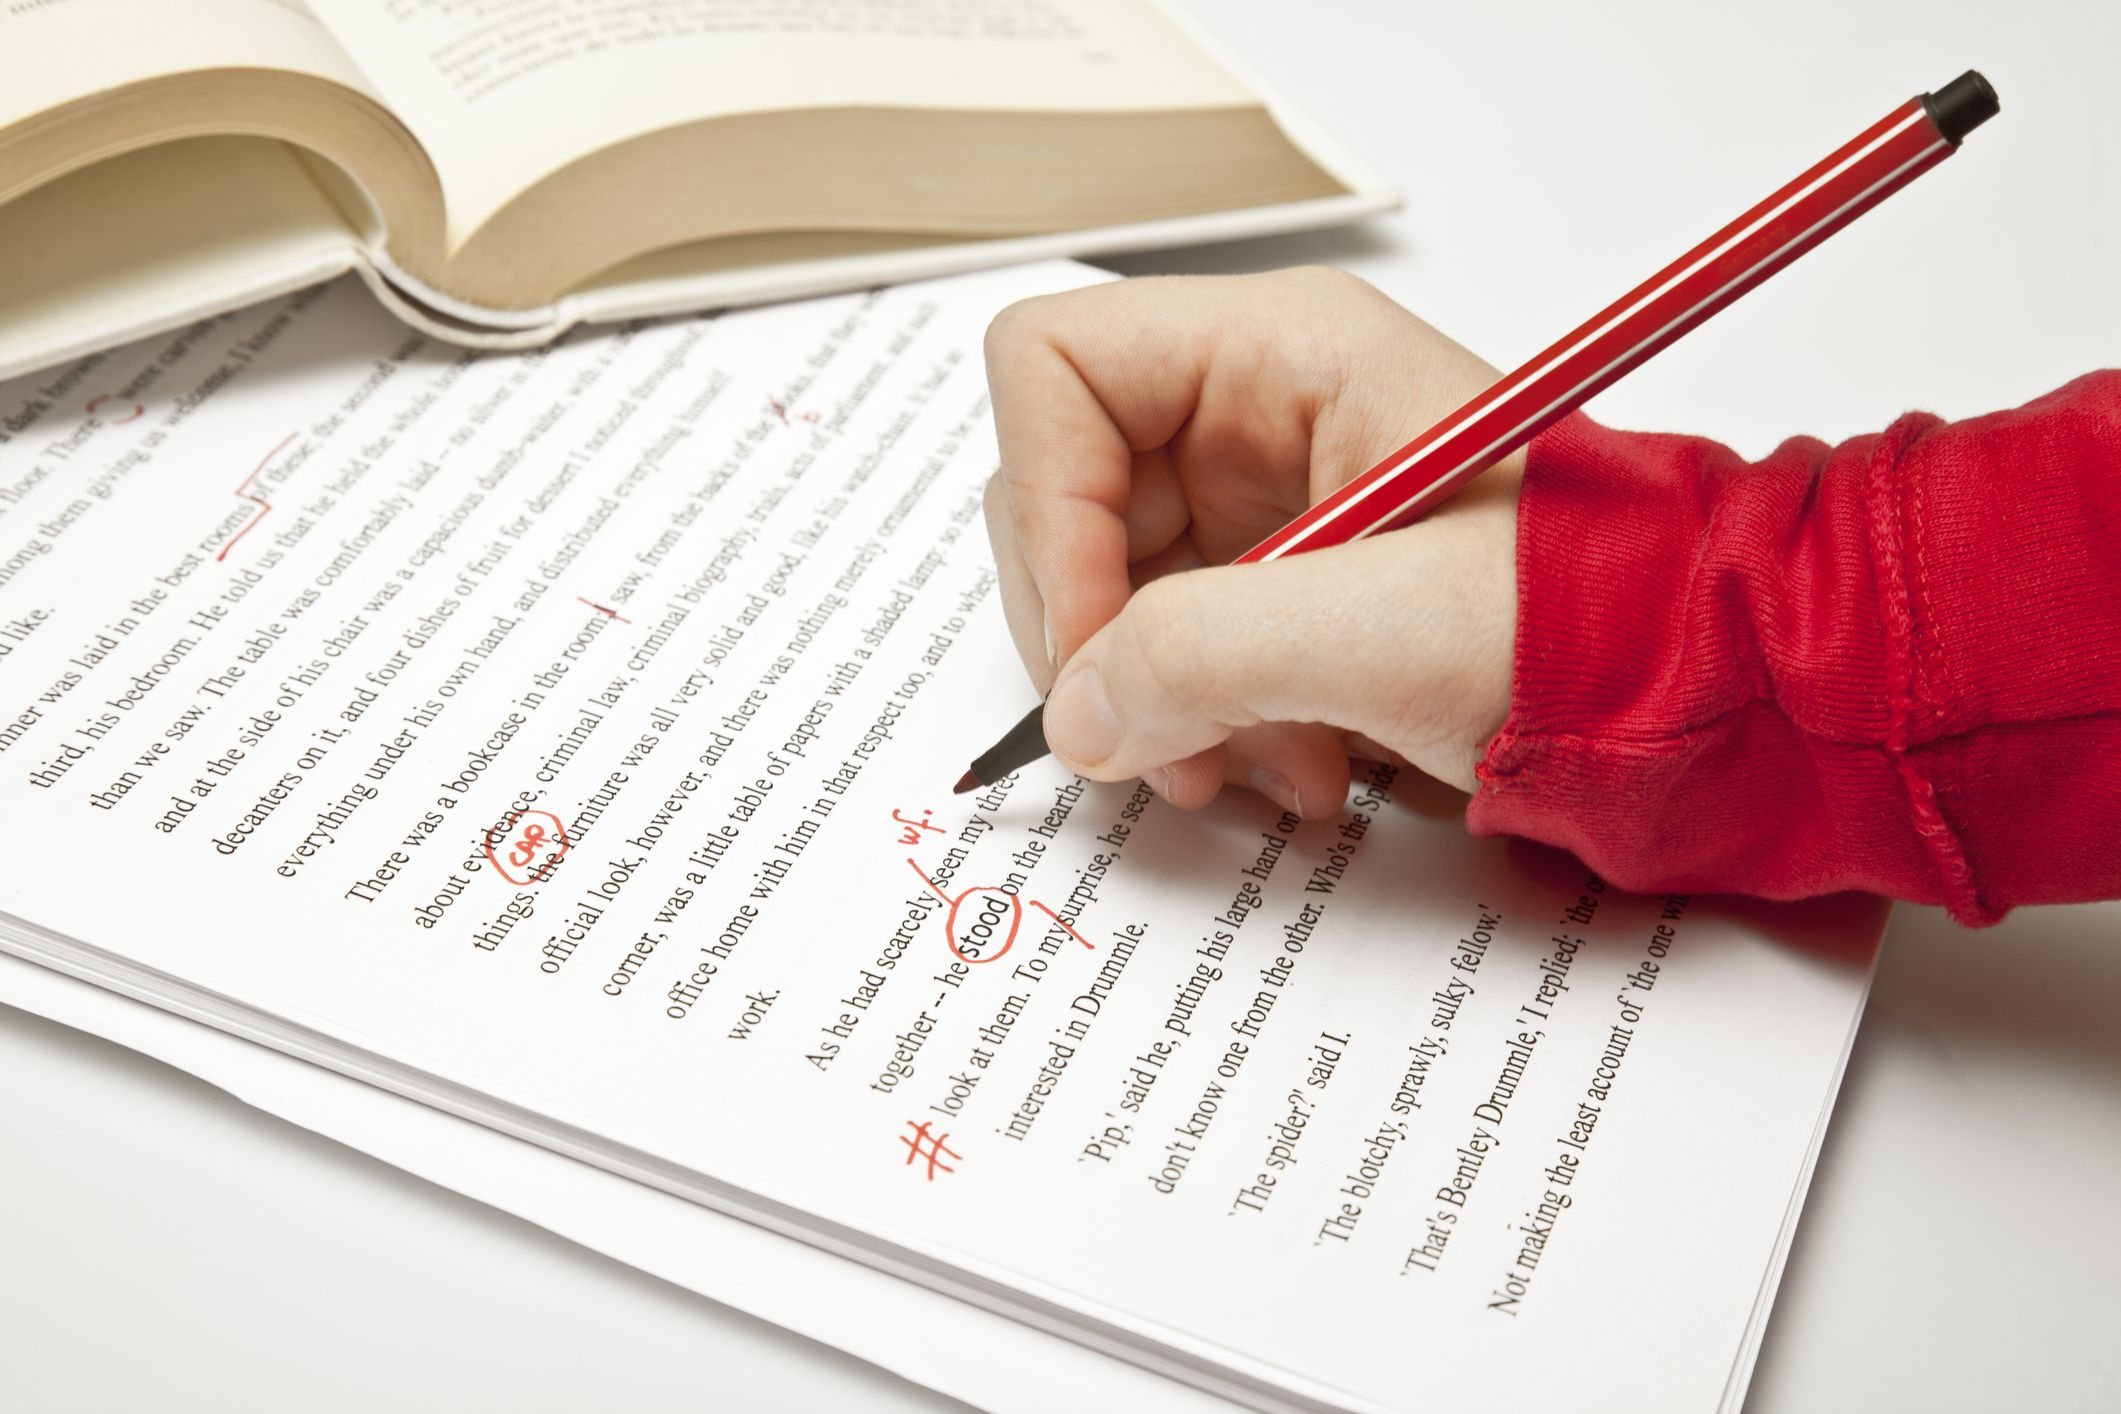 Seminar: Common errors by Russian authors in English research papers